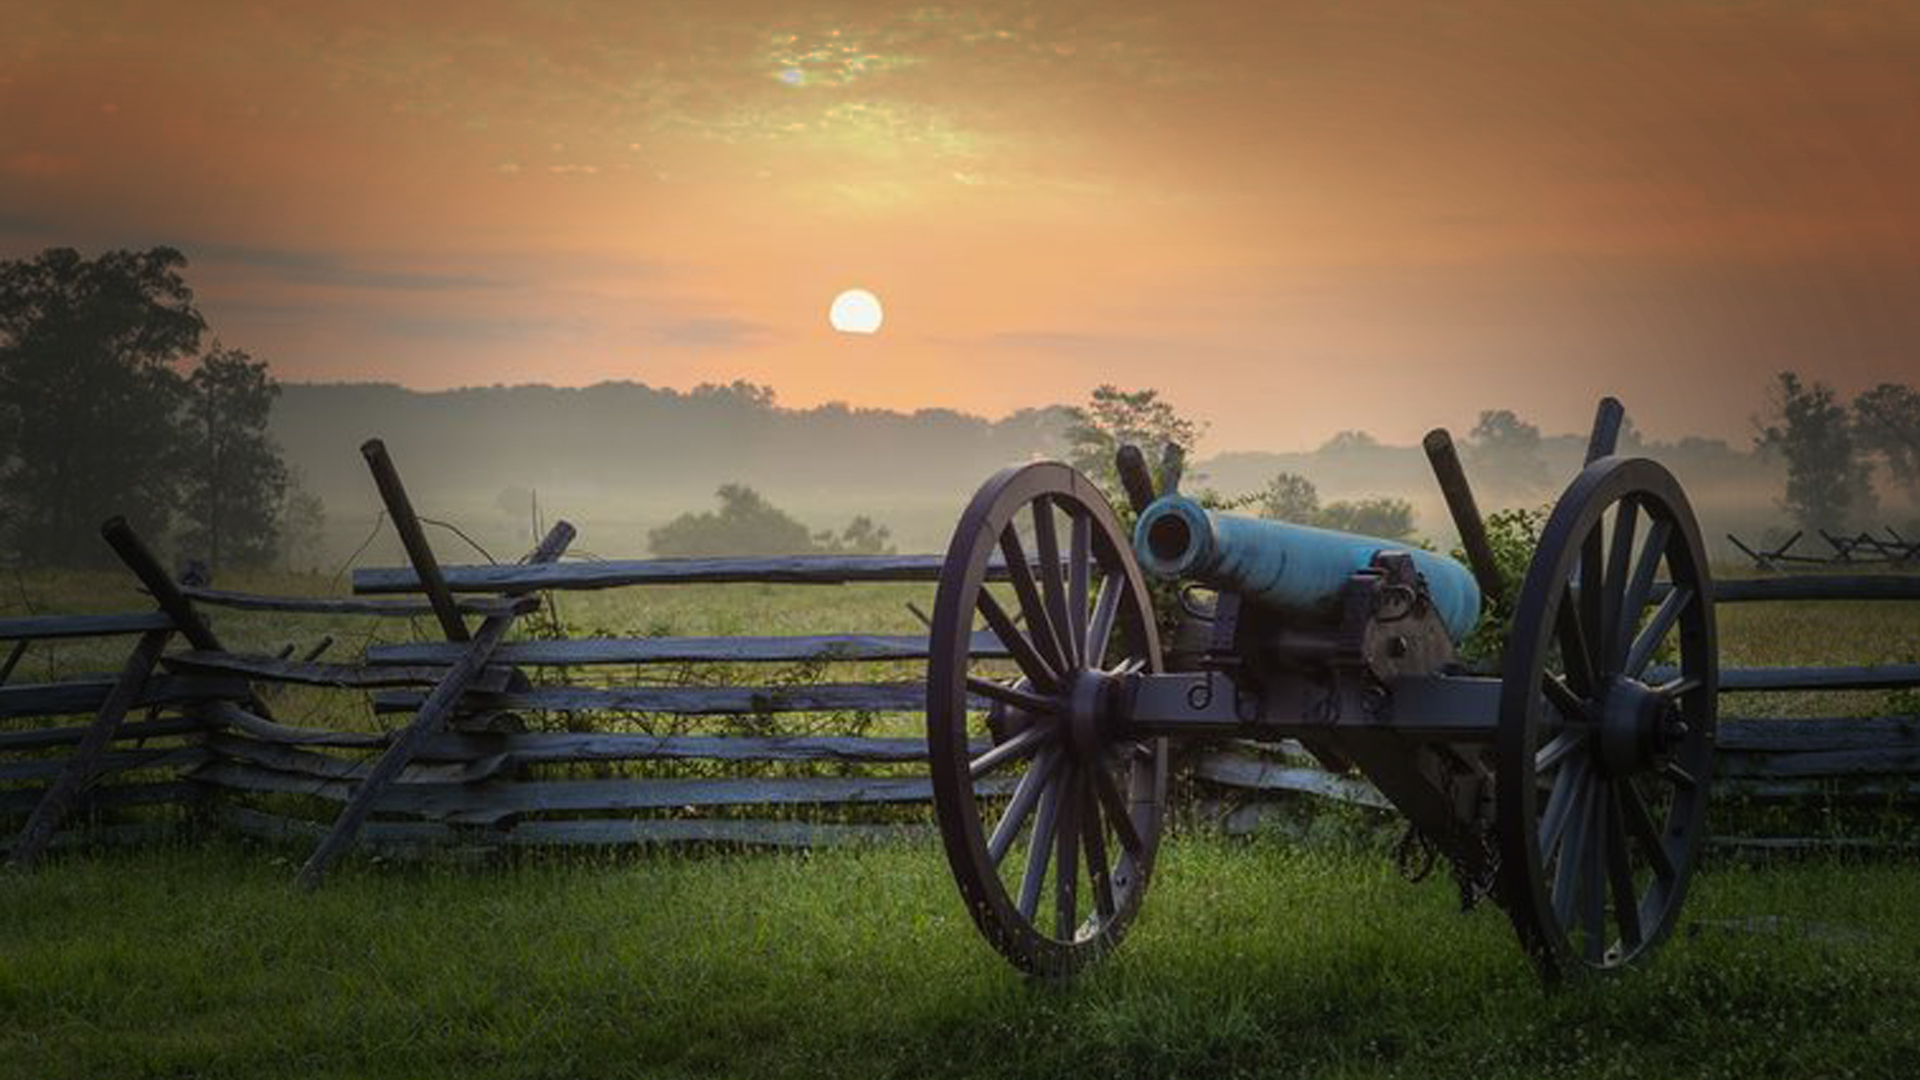 Gettysburg and Stories of Valor - Part 1